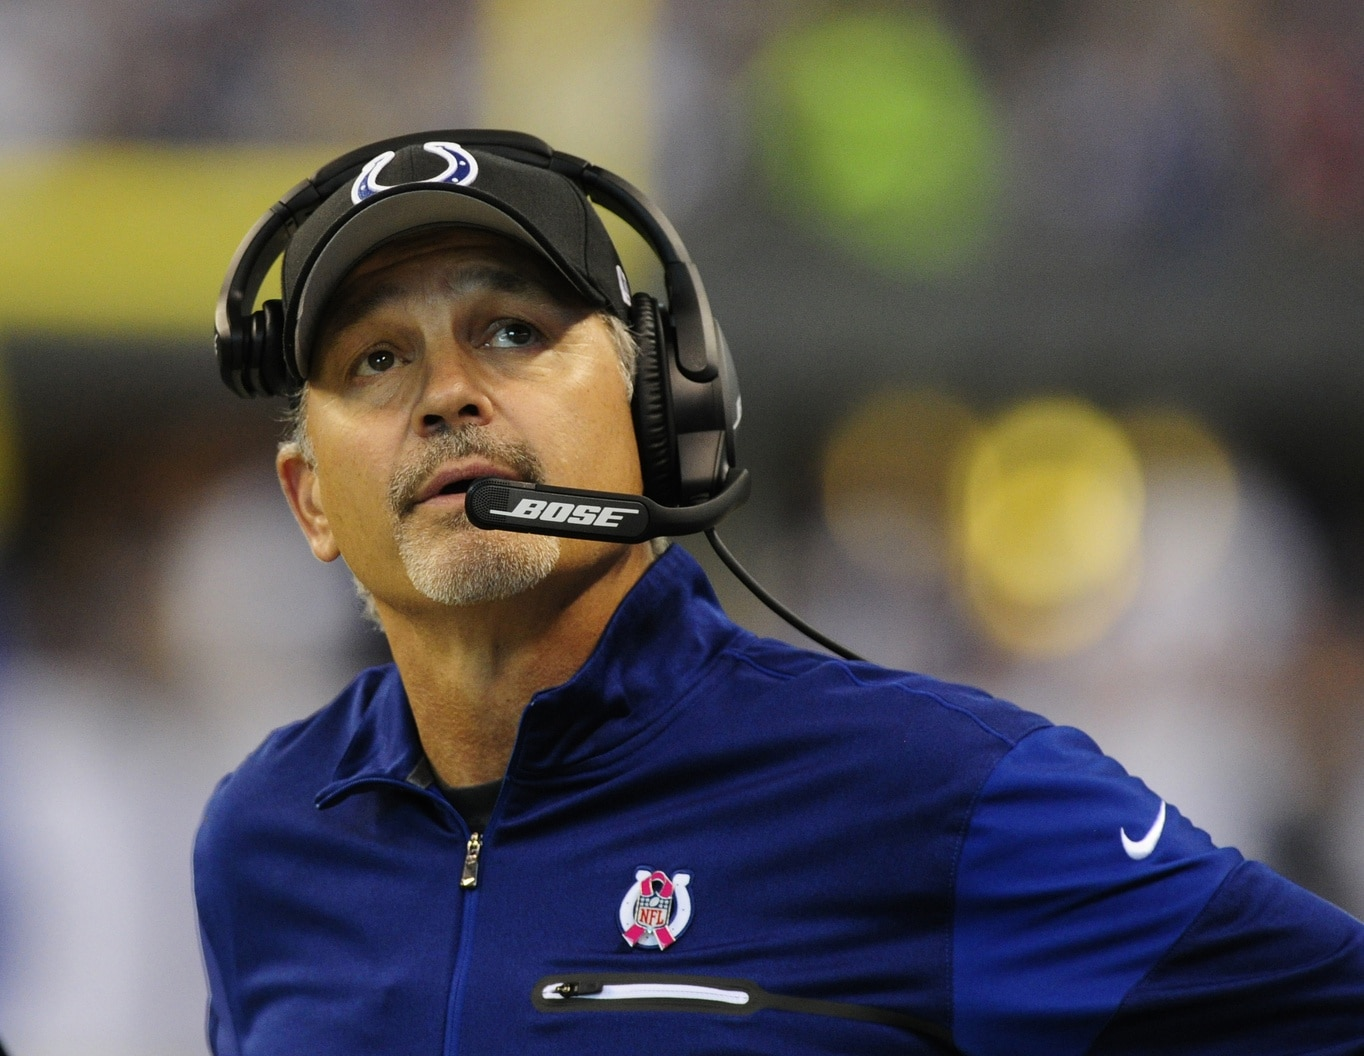 Colts head coach Chuck Pagano